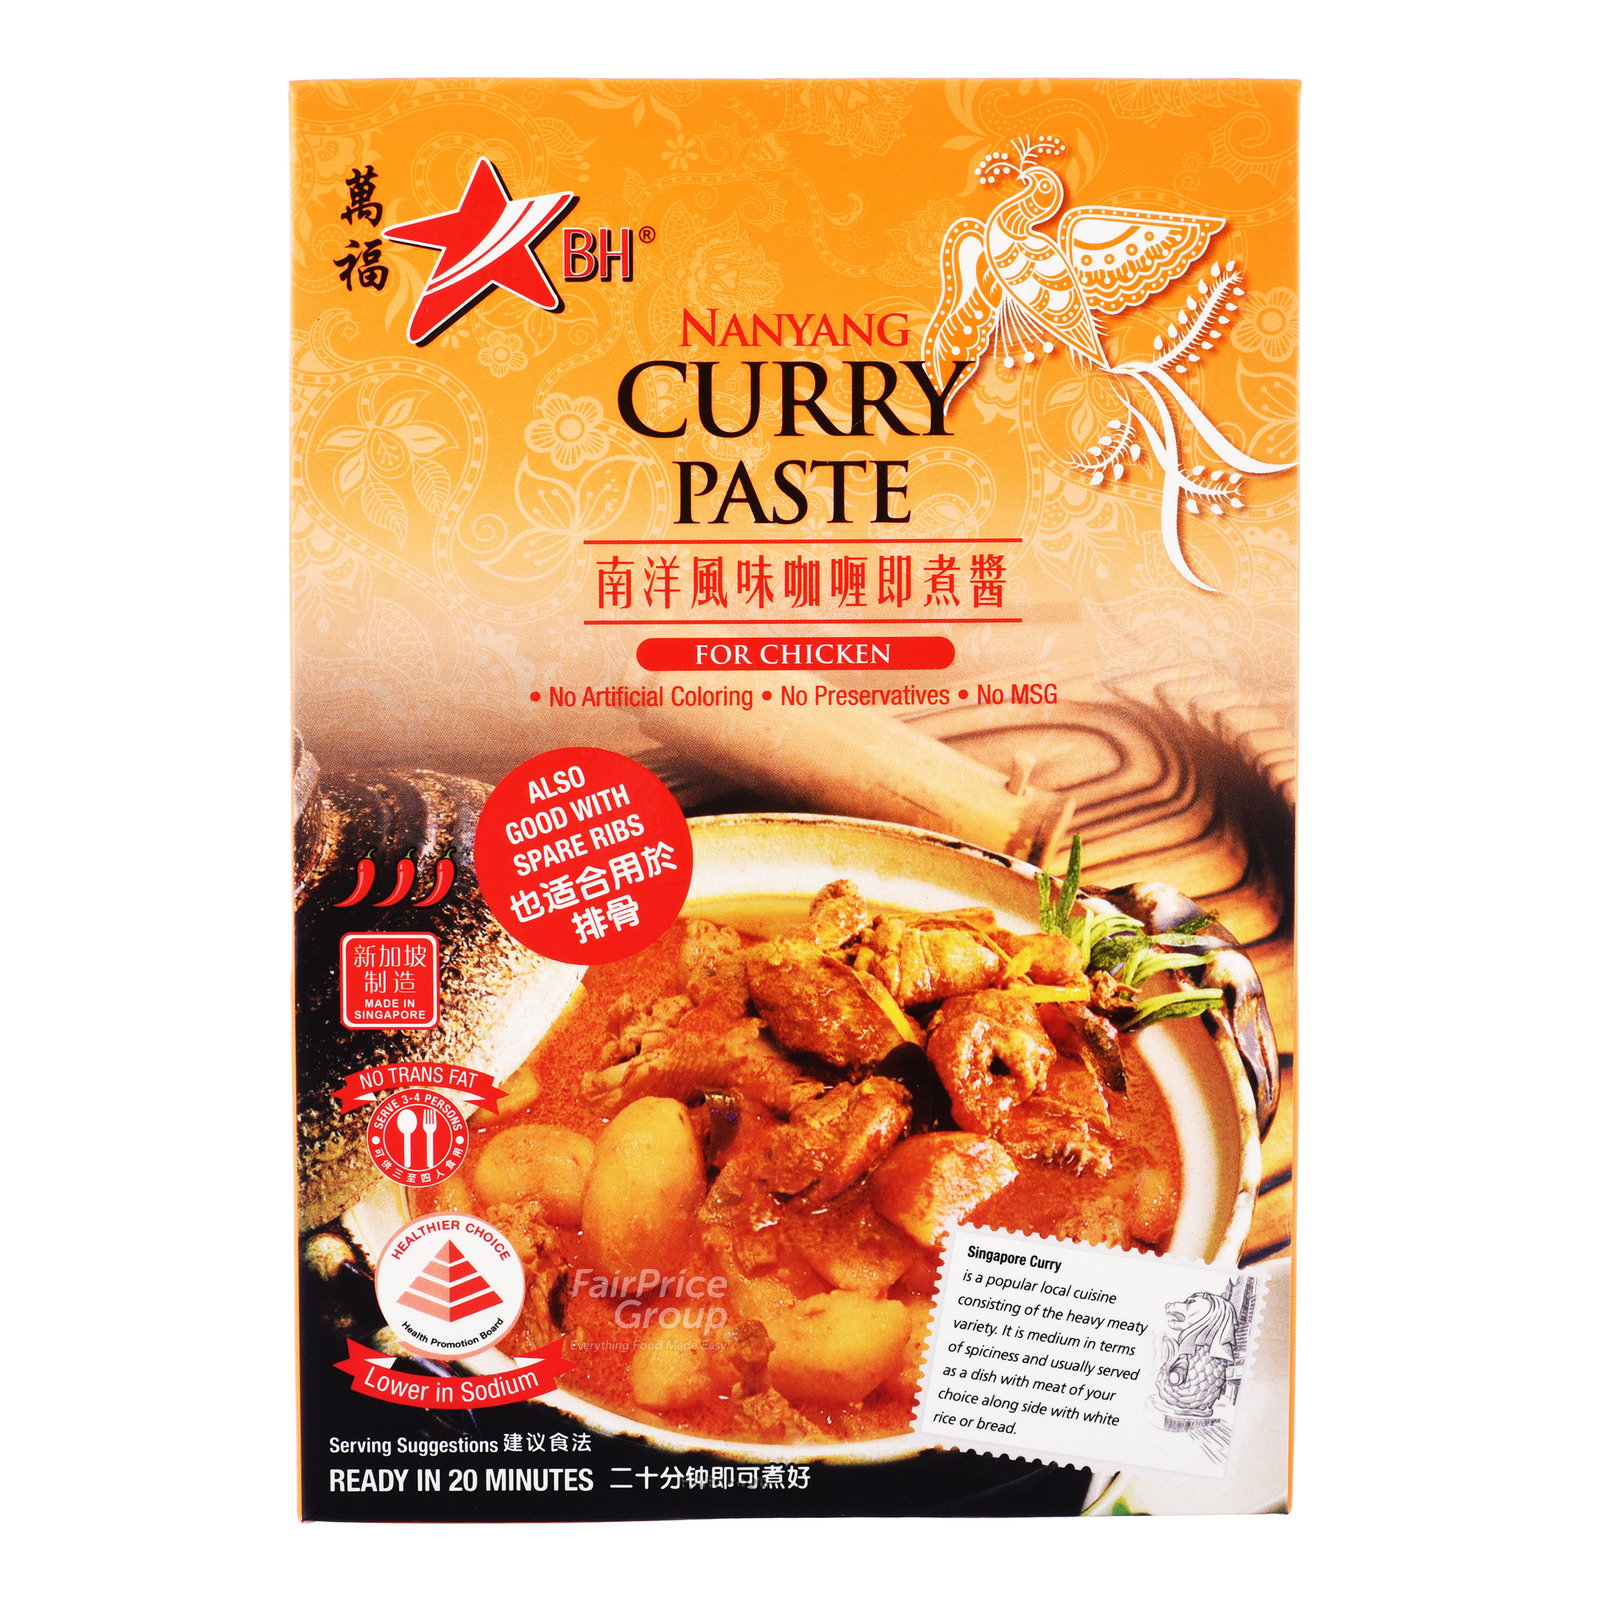 Ban Hock Instant Paste - Nanyang Curry